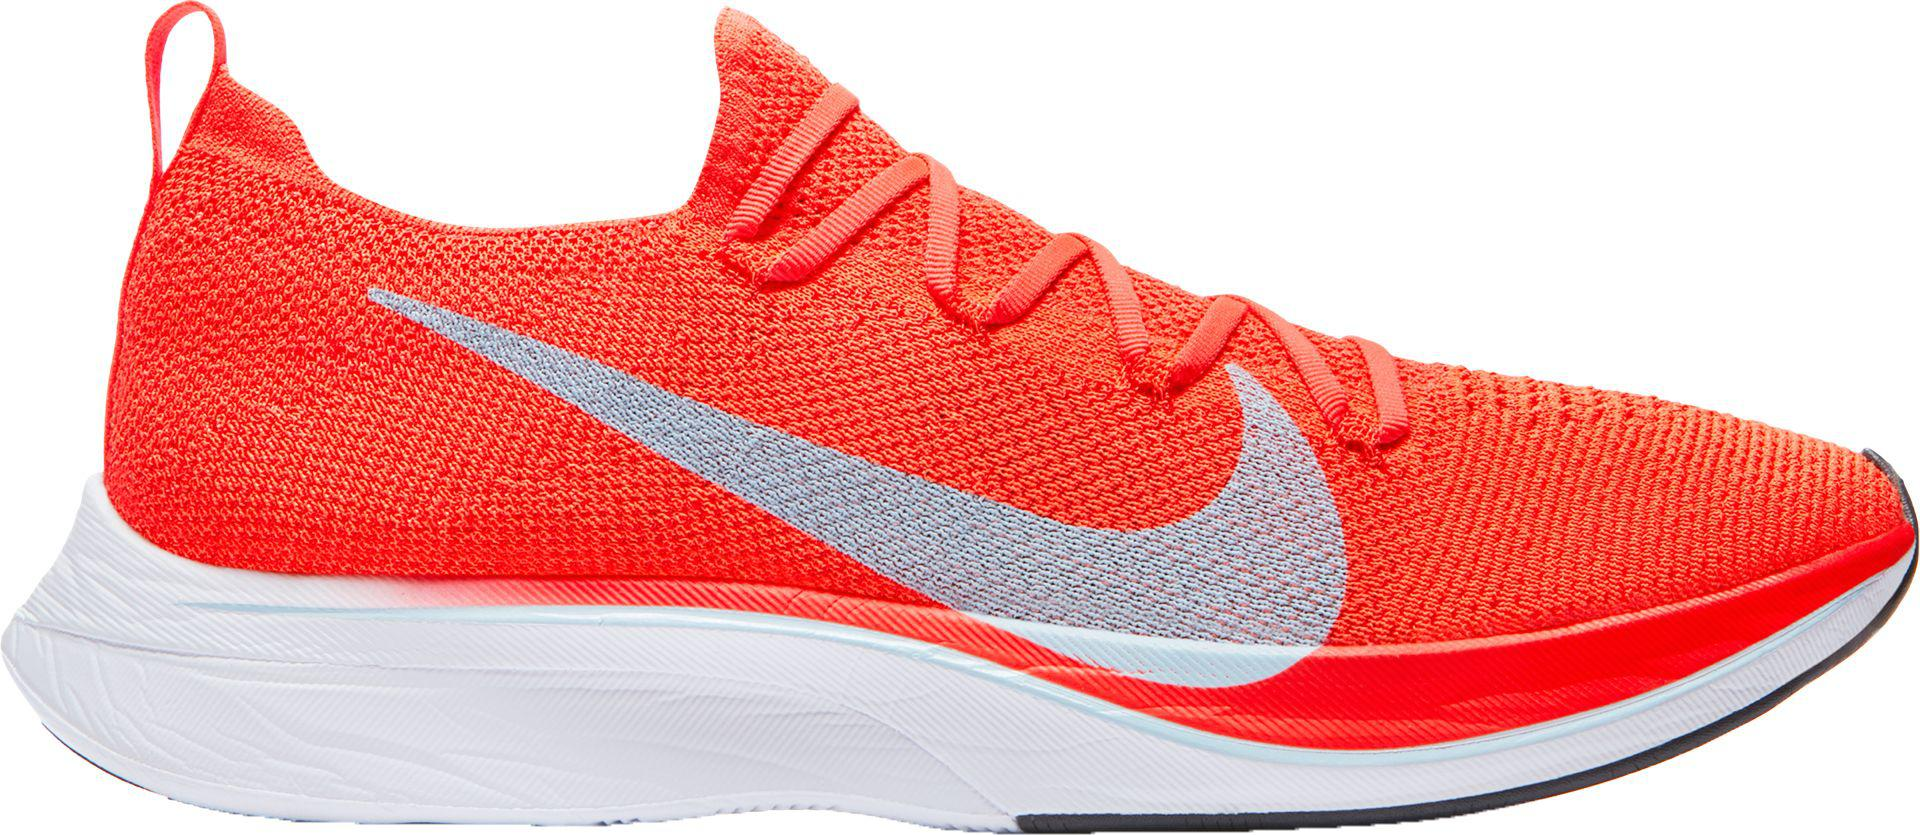 new concept a09cf 1cc7b Nike - Red Vaporfly 4% Flyknit Running Shoes for Men - Lyst